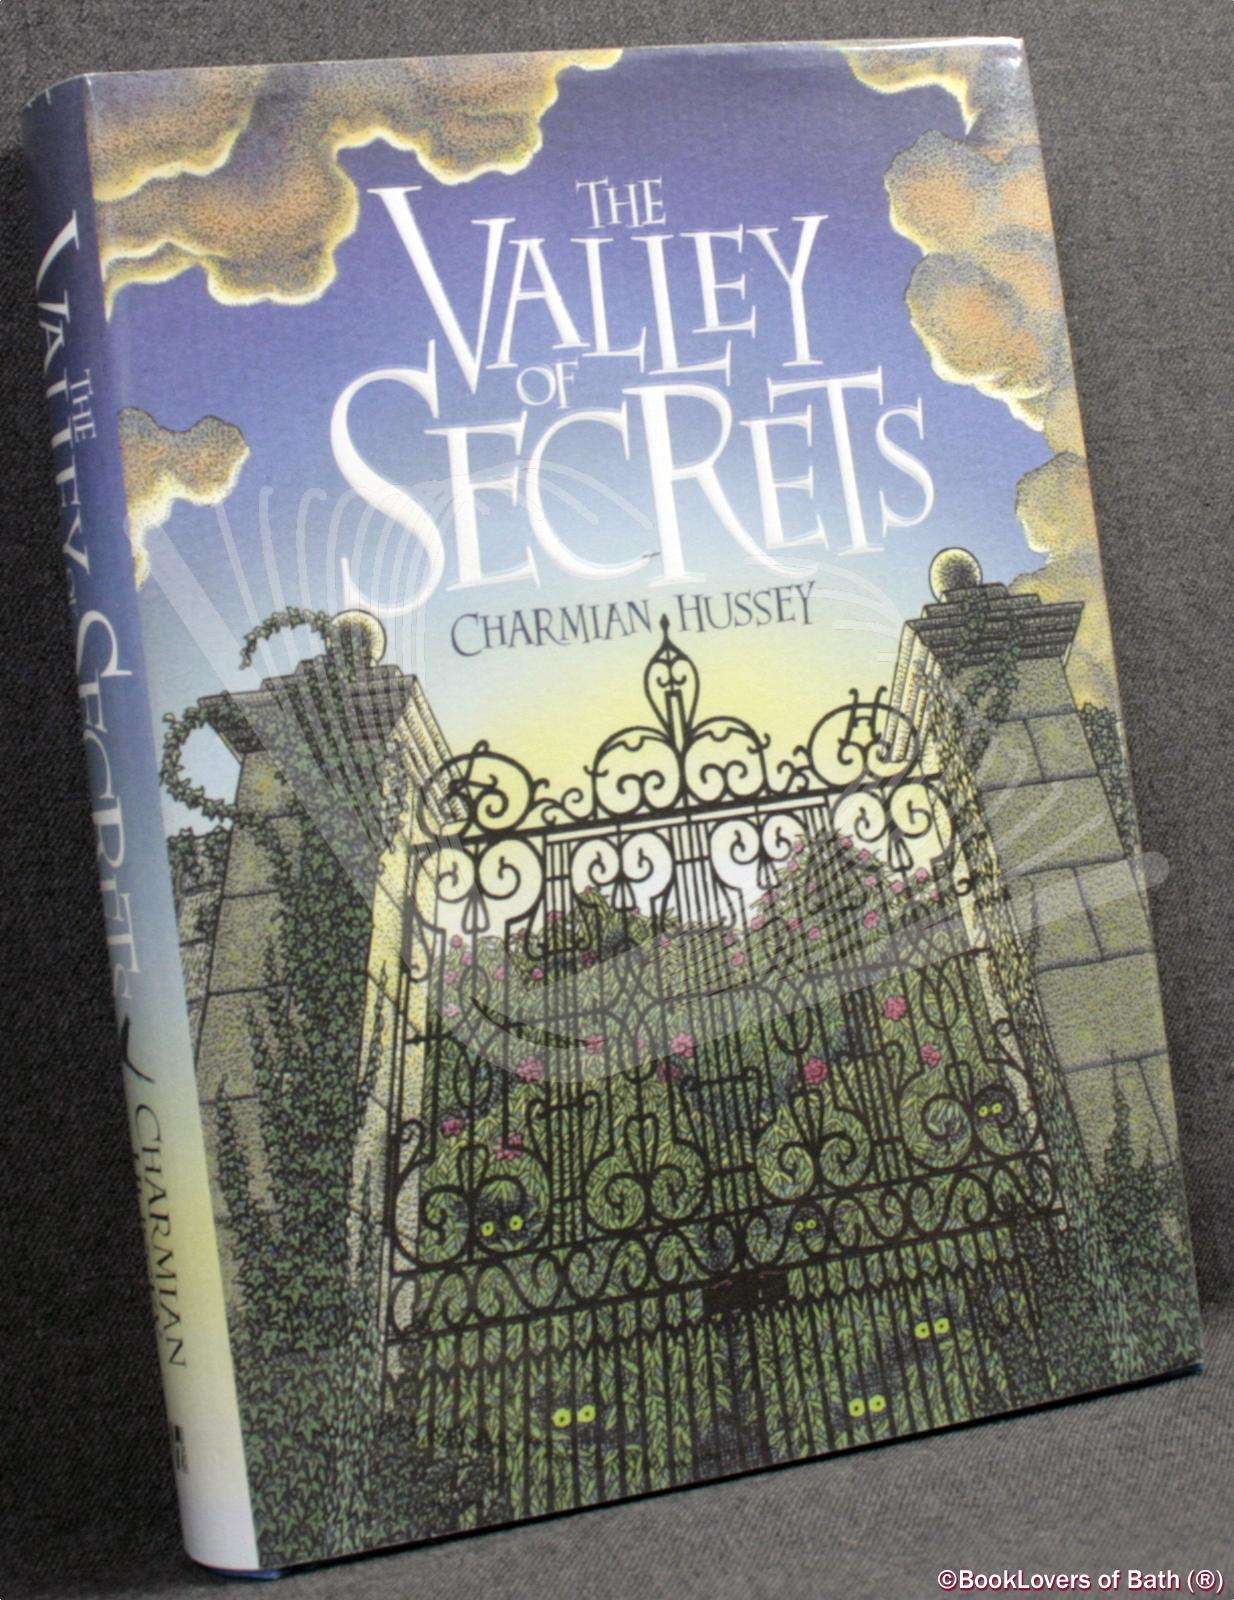 The Valley of Secrets - Charmian Hussey